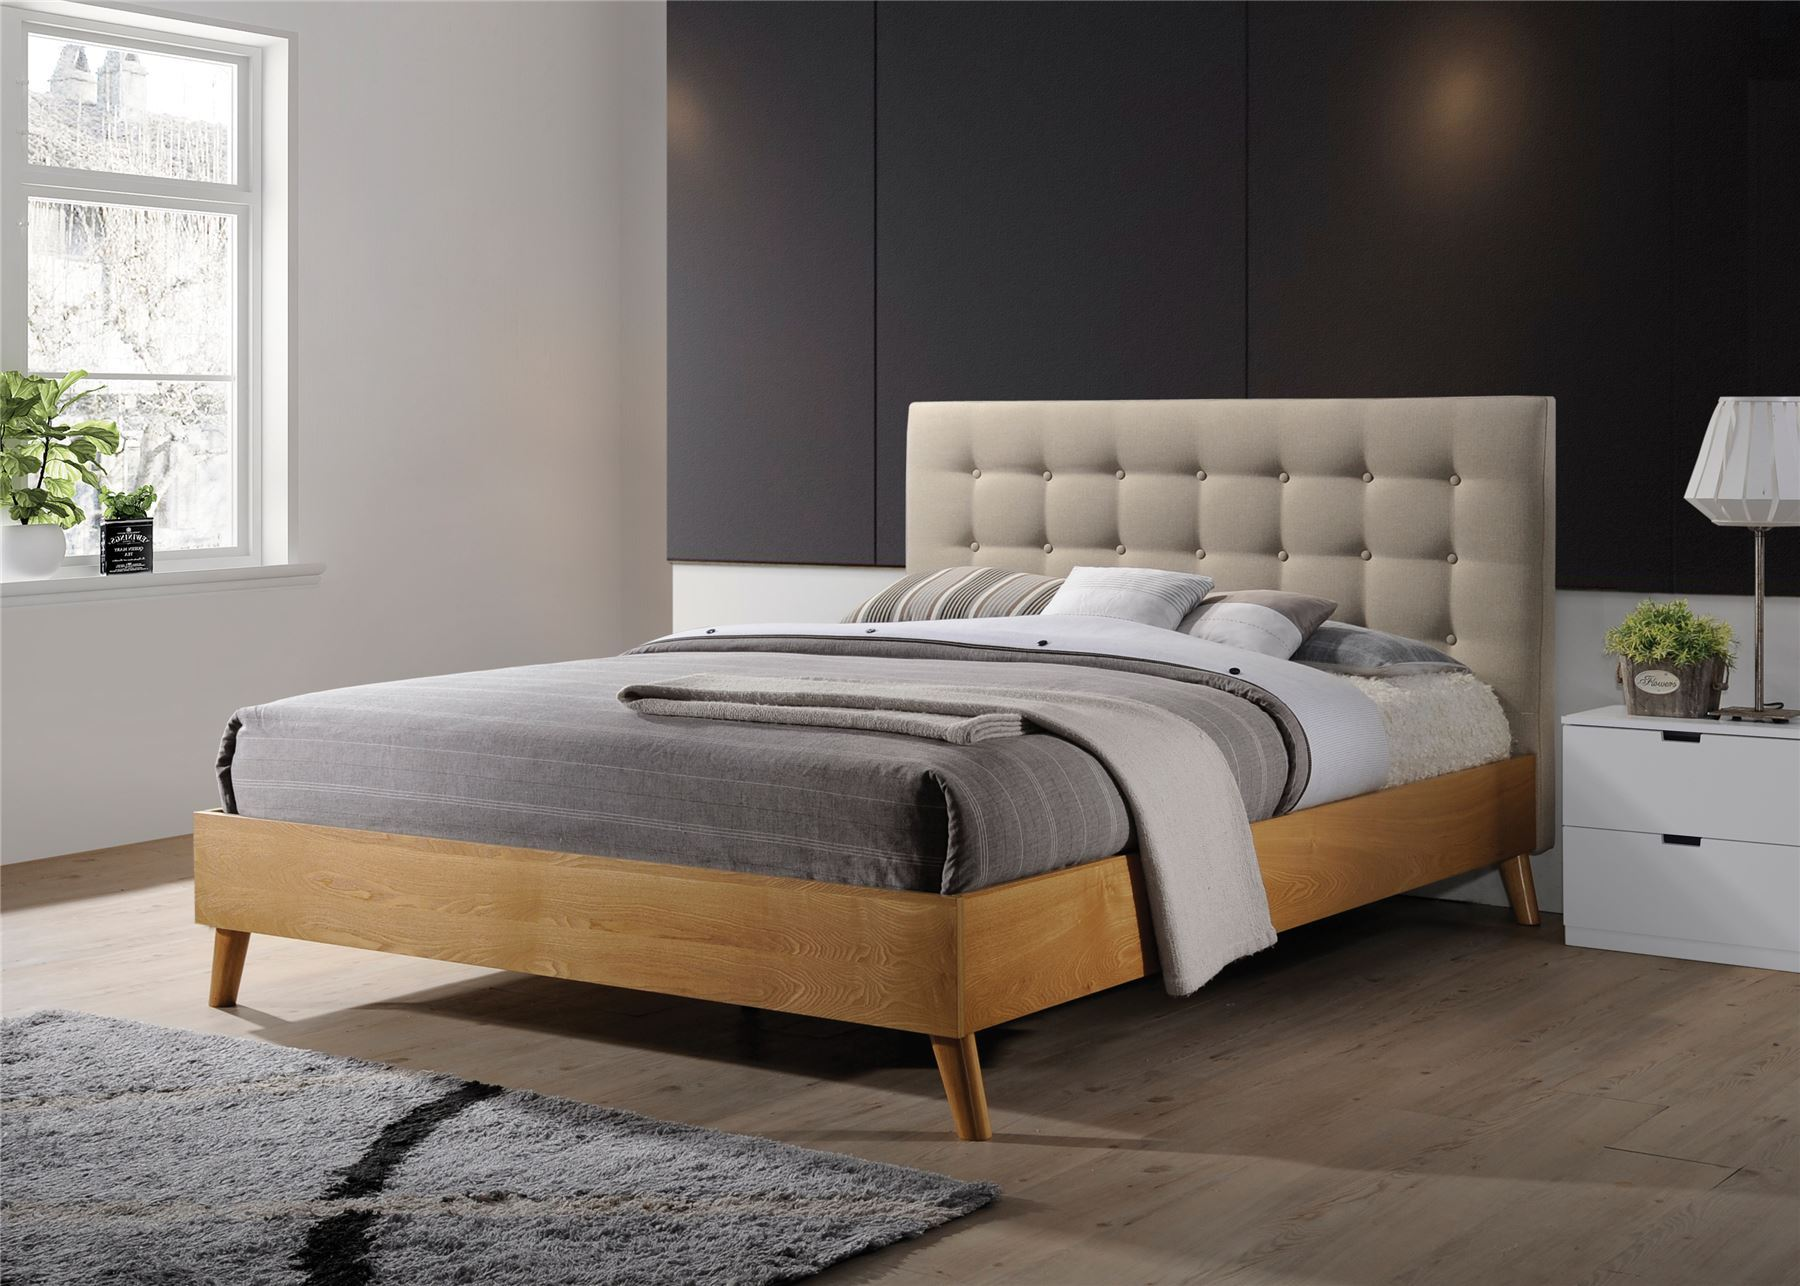 gino bed frame beige fabric oak wood king size 5ft 150cm. Black Bedroom Furniture Sets. Home Design Ideas